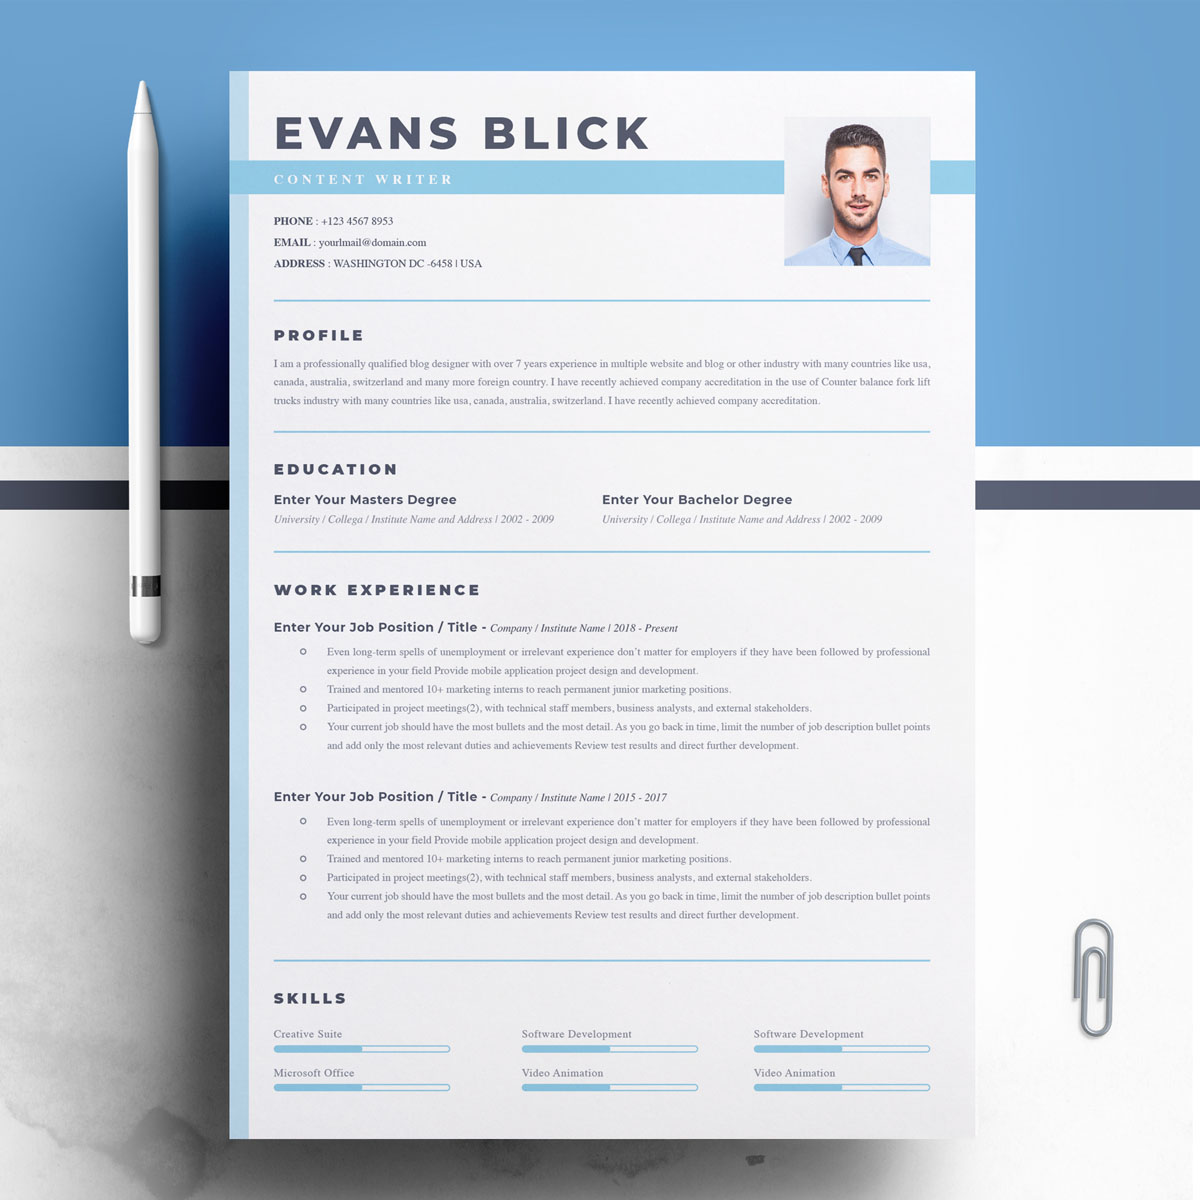 https://s3u.tmimgcdn.com/1860567-1551108623285_01_Modern-Resume-Template---CV-Template-Cover-Letter-Professional-Teacher-Resume_Main-Thumbnail-Image.jpg